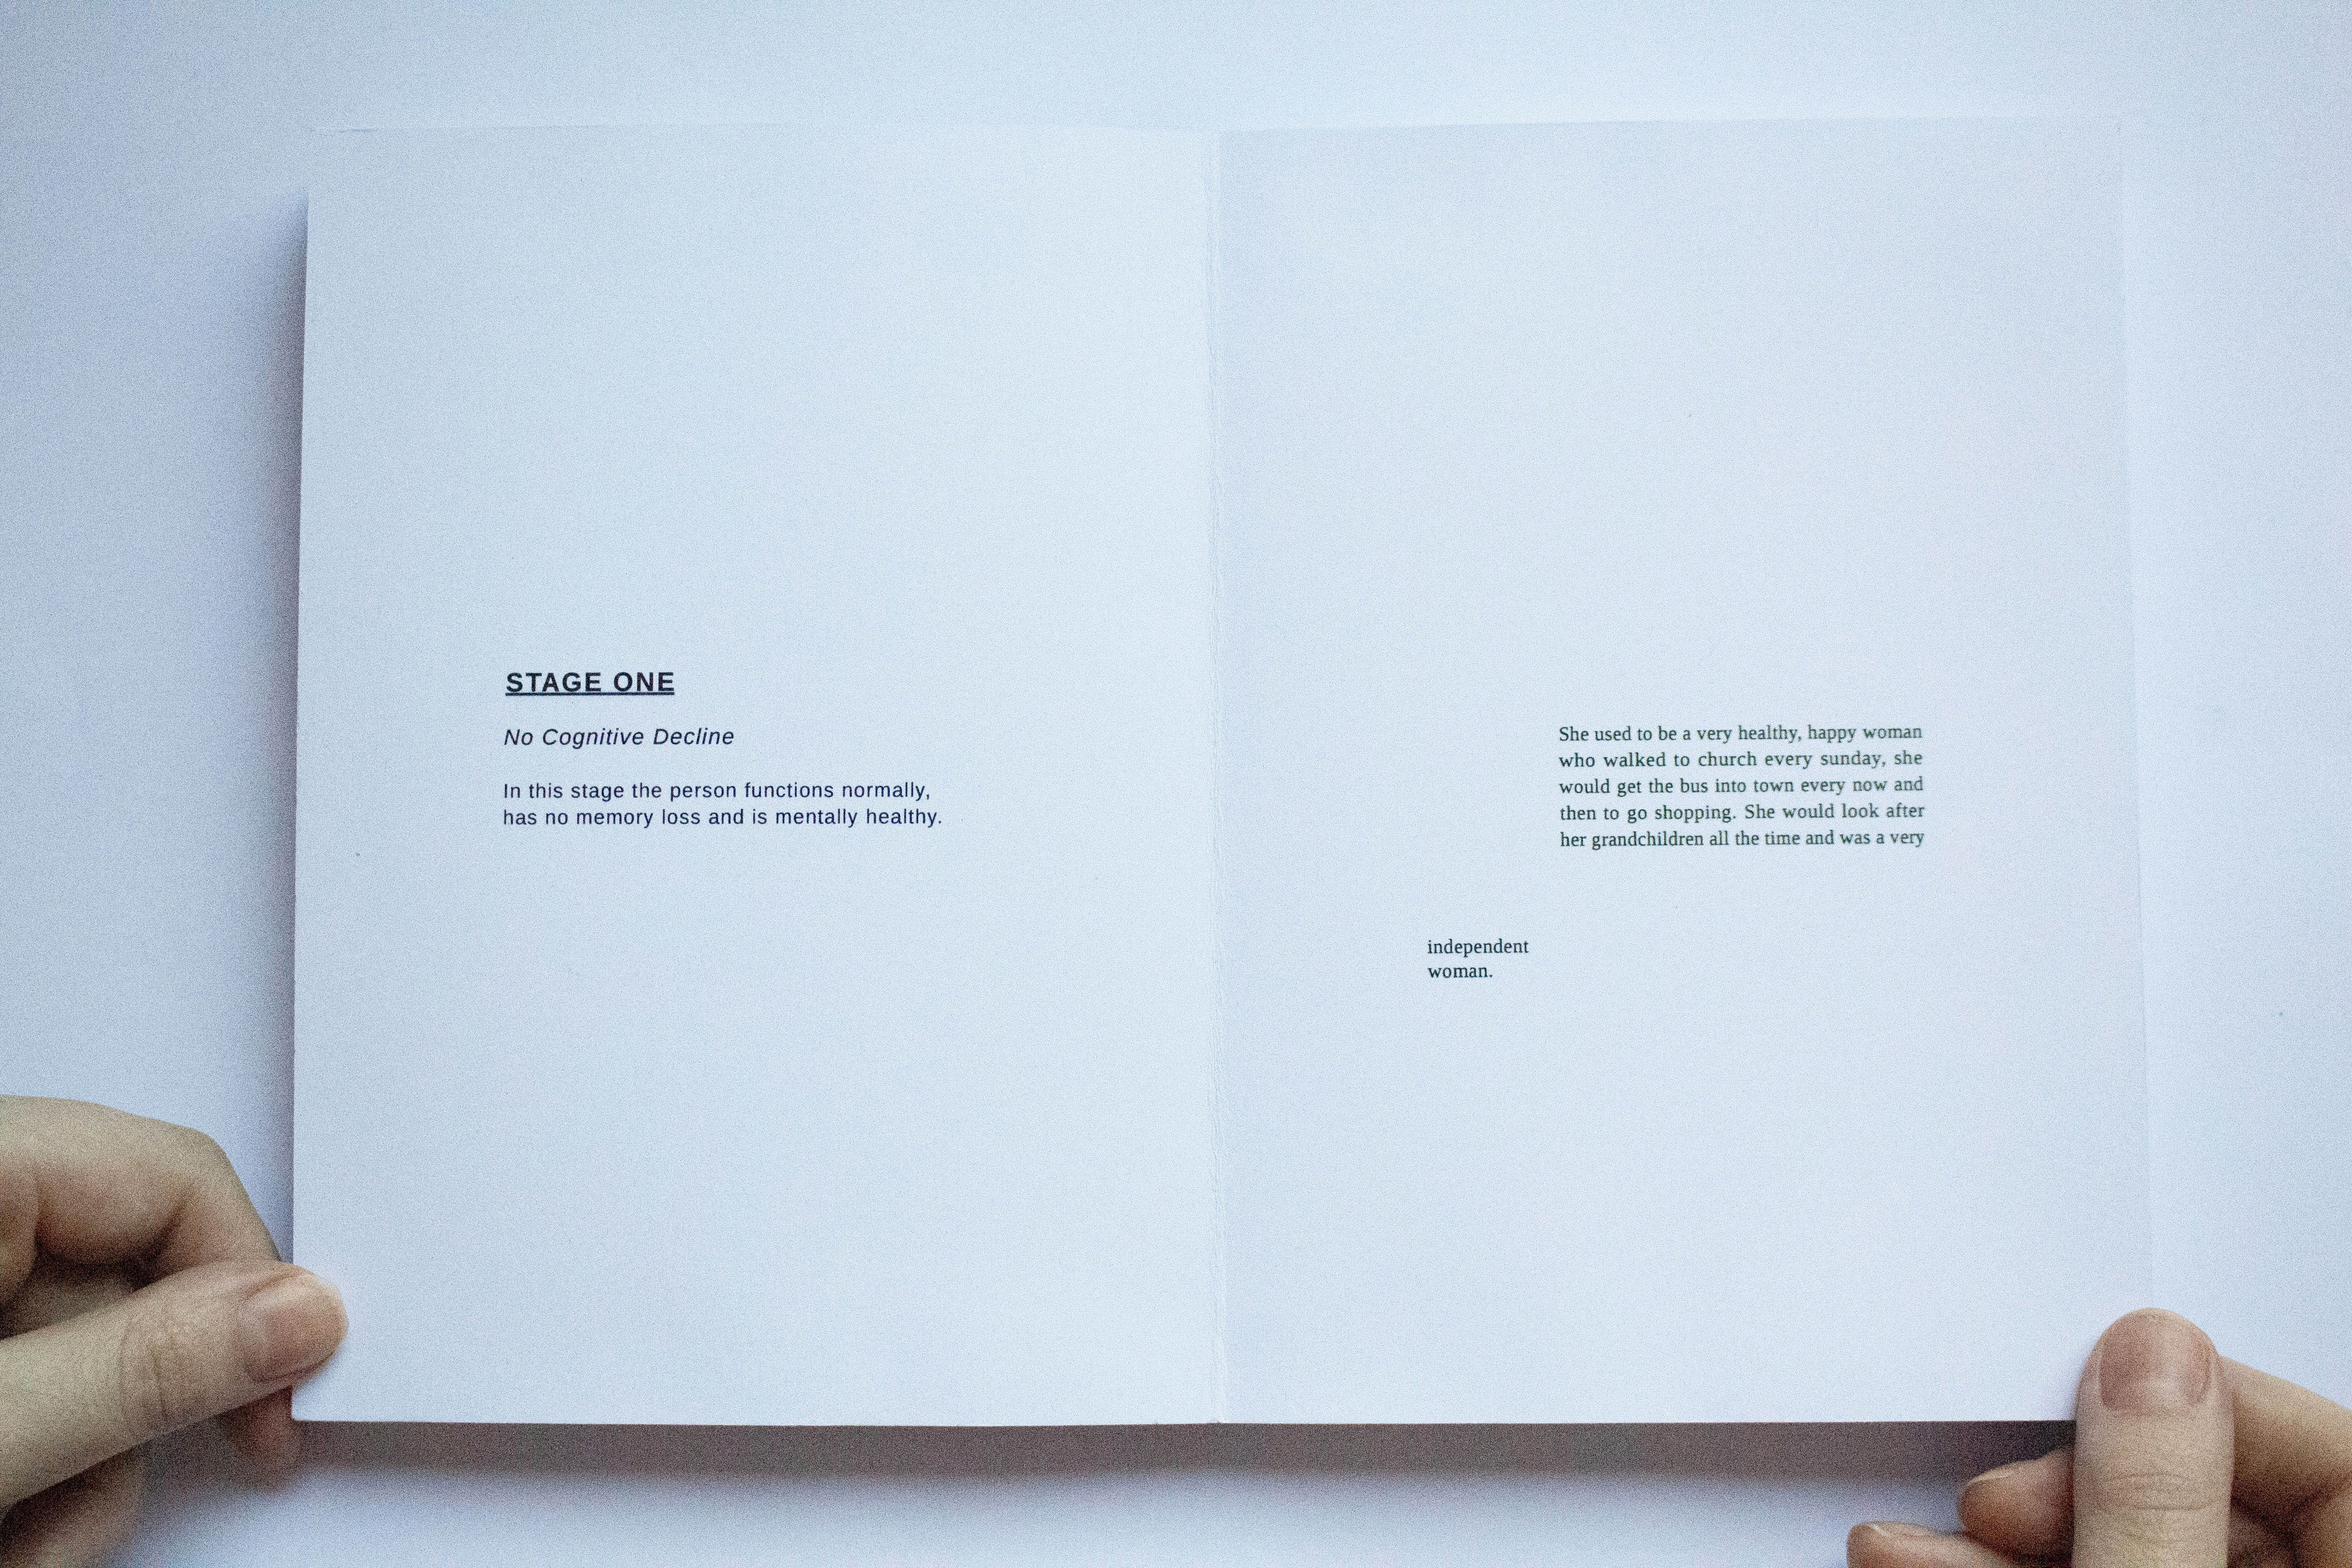 Inner page of book titled Stage 1 with small paragraphs in the middle of the page.